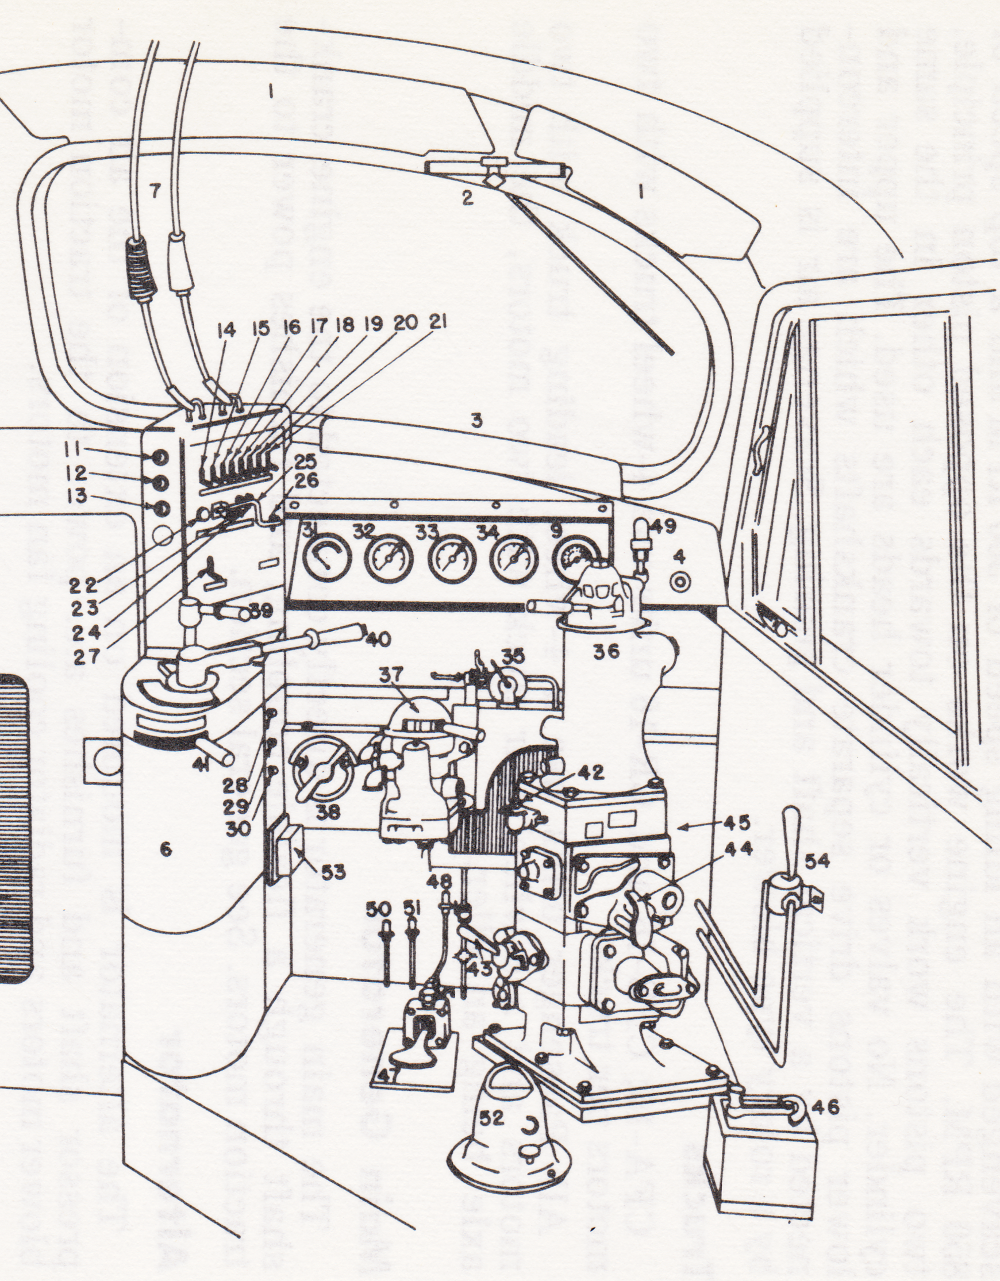 rolly martin country reaching the headend air signal equipment Engine Parts Diagram from cnr operating manual for lo otive engineers september 1966